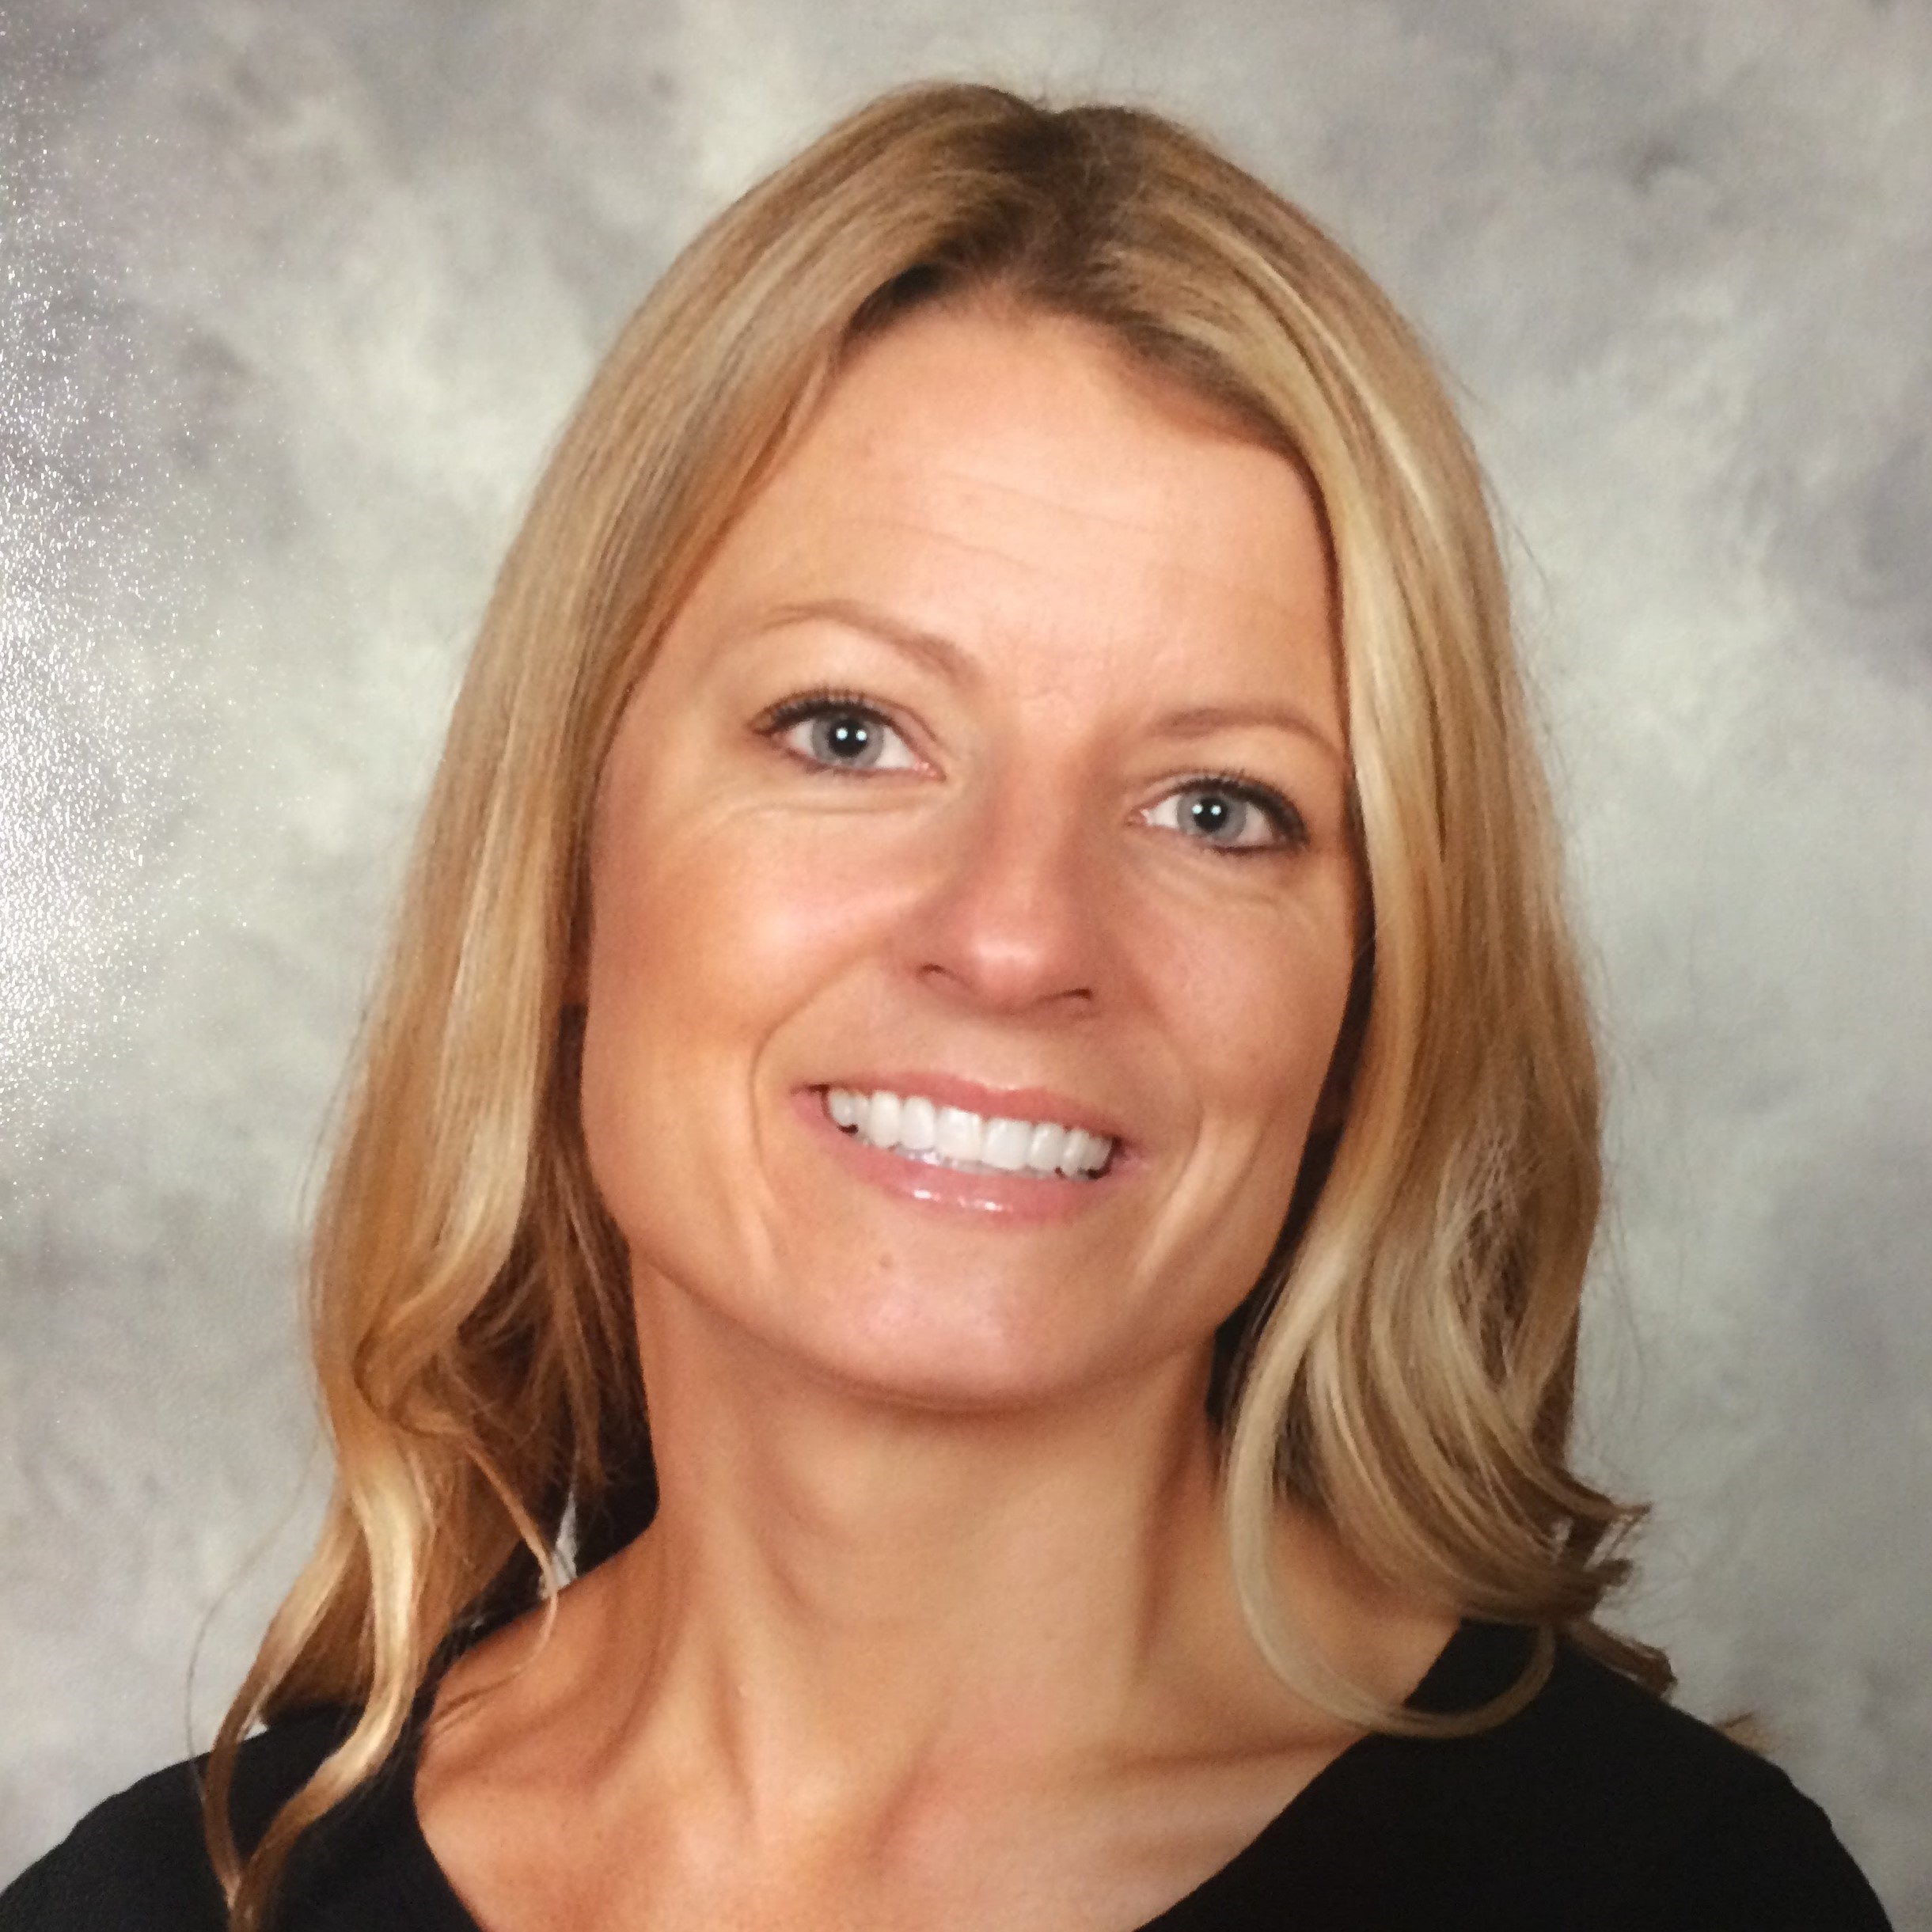 Mandy Cyr,Trainer/Coach - Personalized LearningSpecialist